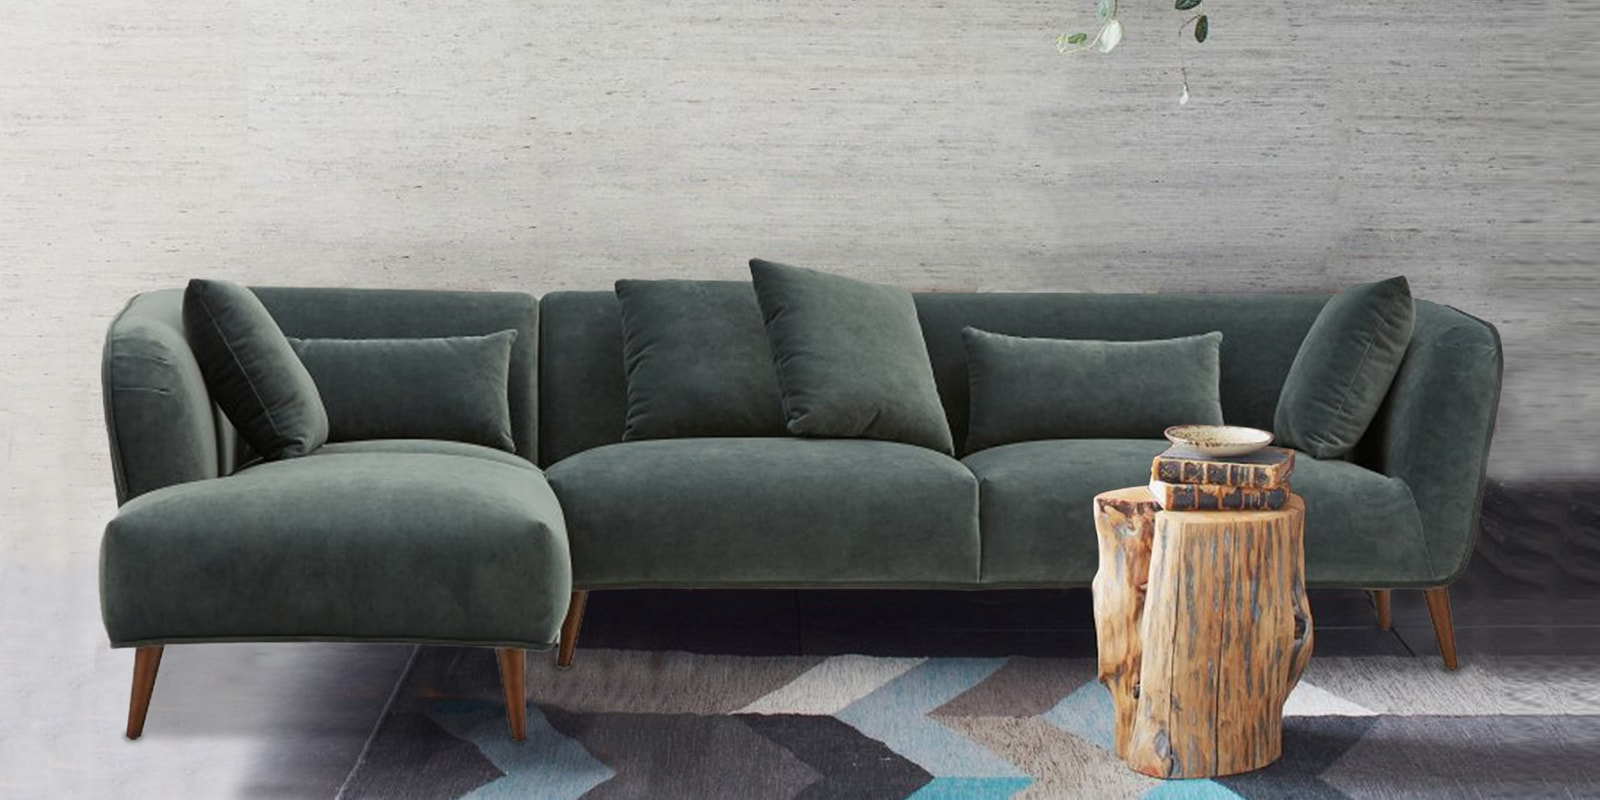 Owego L Shaped Sectional Sofas With Regard To Famous Cheap L Shaped Sofas – Hakikahlenberg (View 12 of 25)